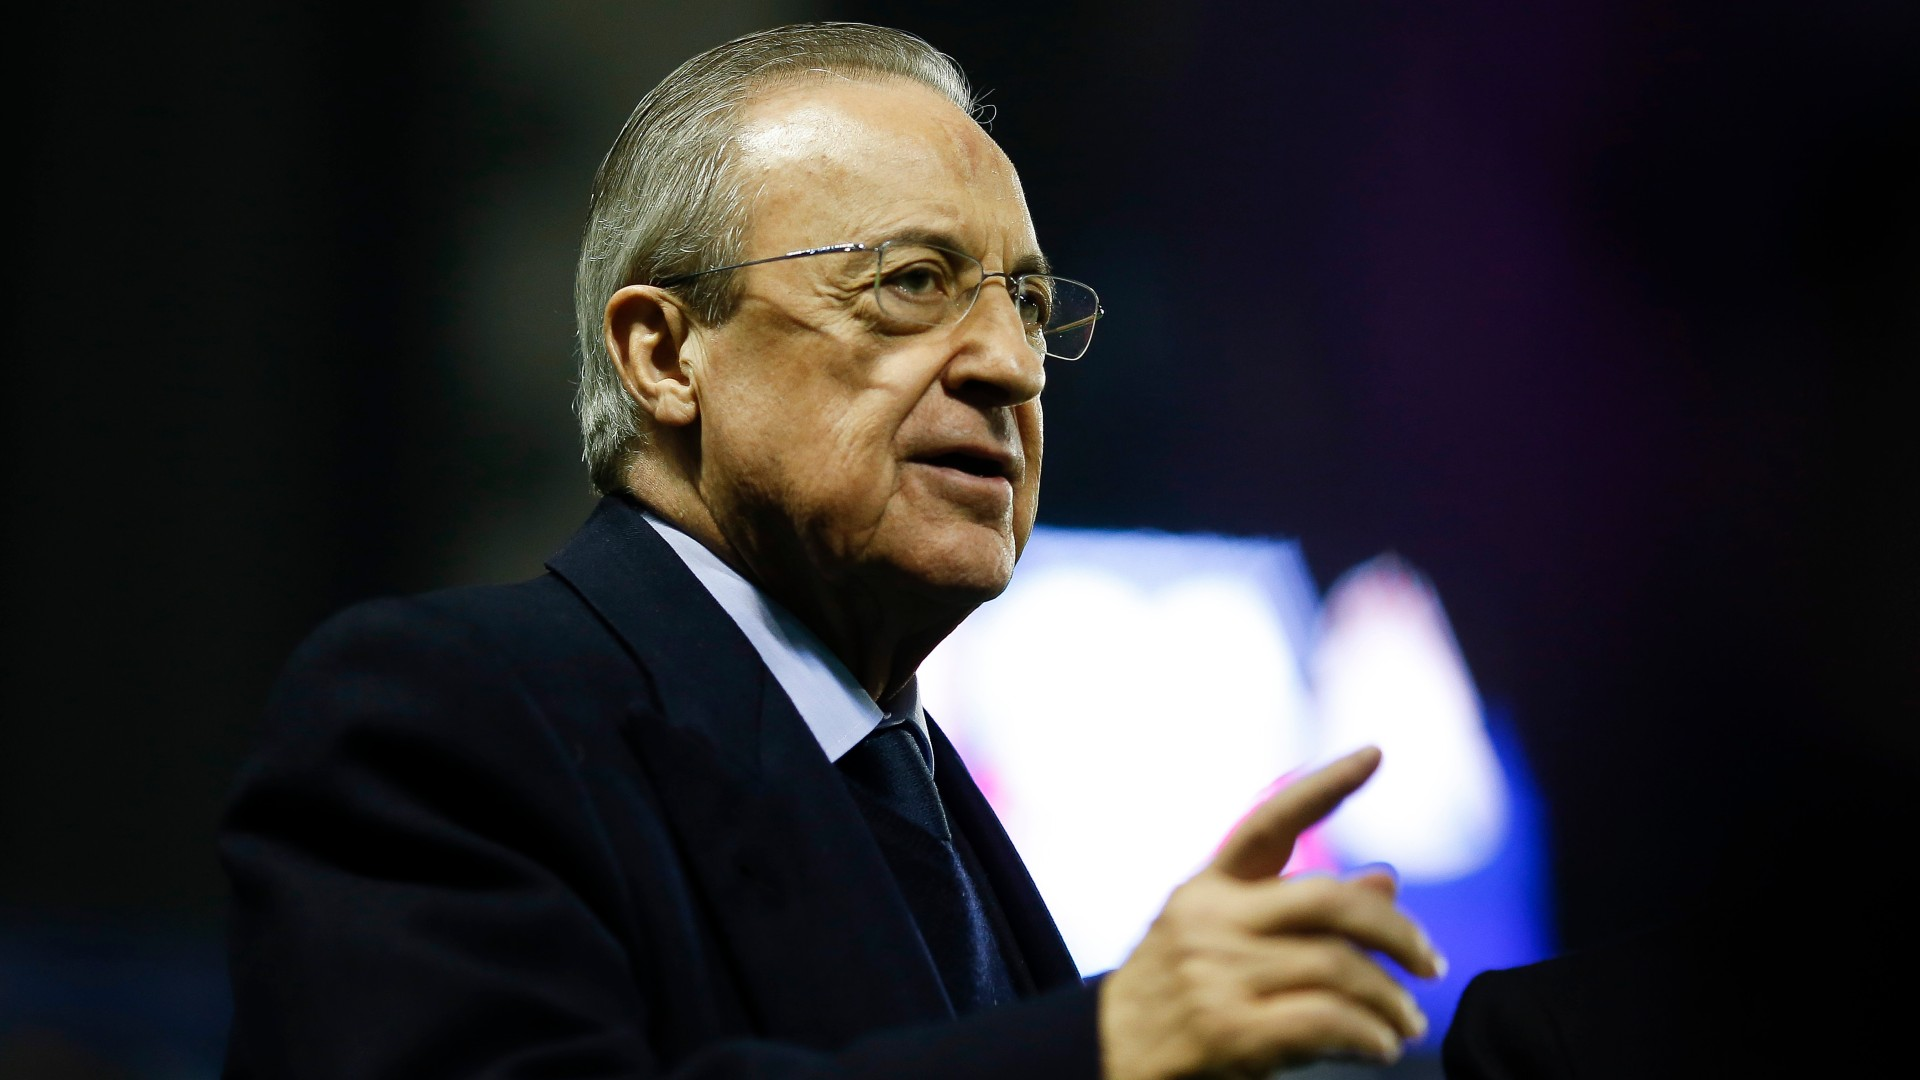 Real Madrid confirms the start of the presidential election process, as Perez seeks a new term